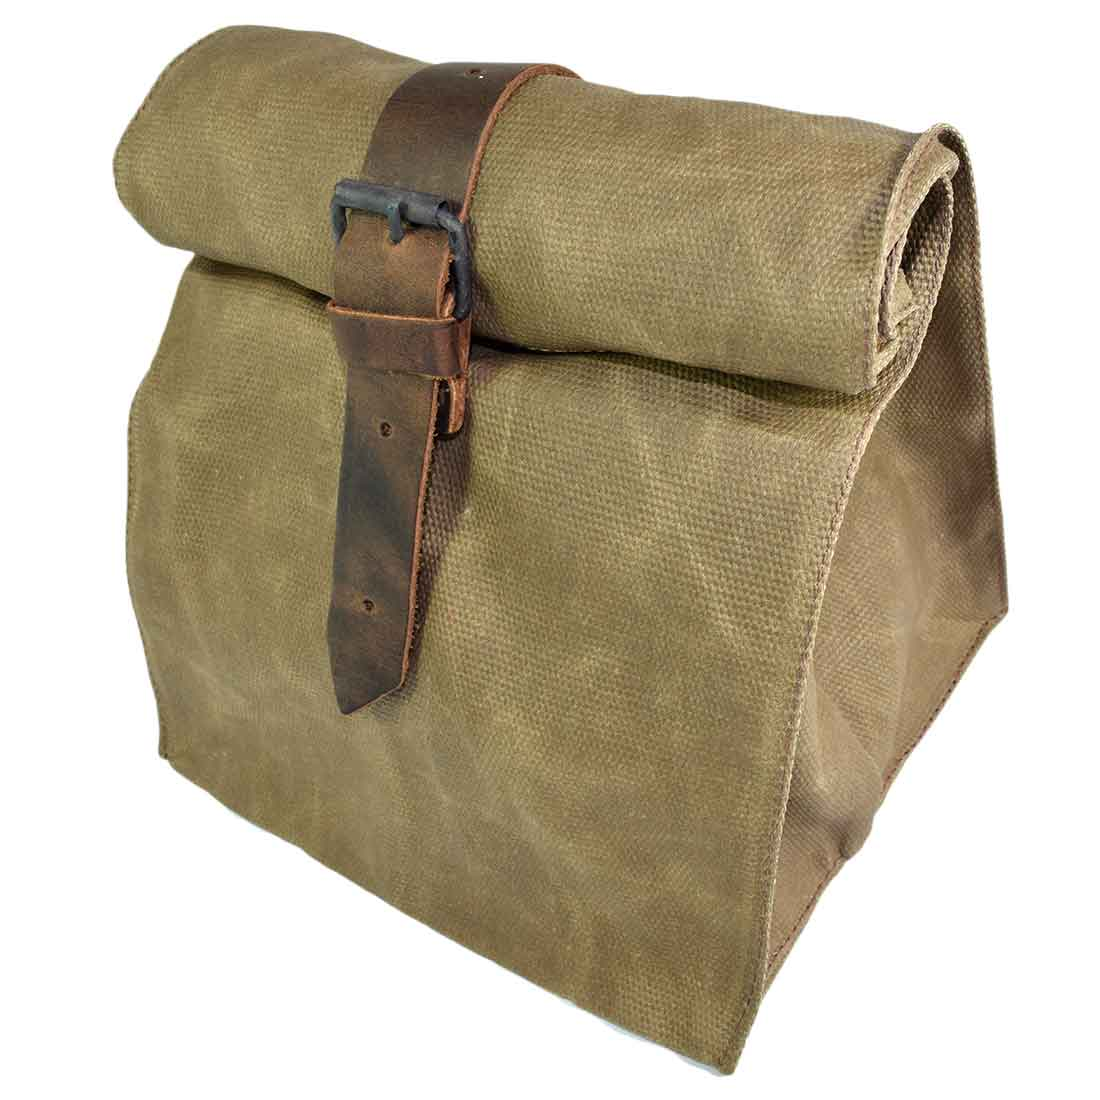 Waterproof Waxed Canvas Lunch Bag Handmade by Hide   Drink 41431a50c016c